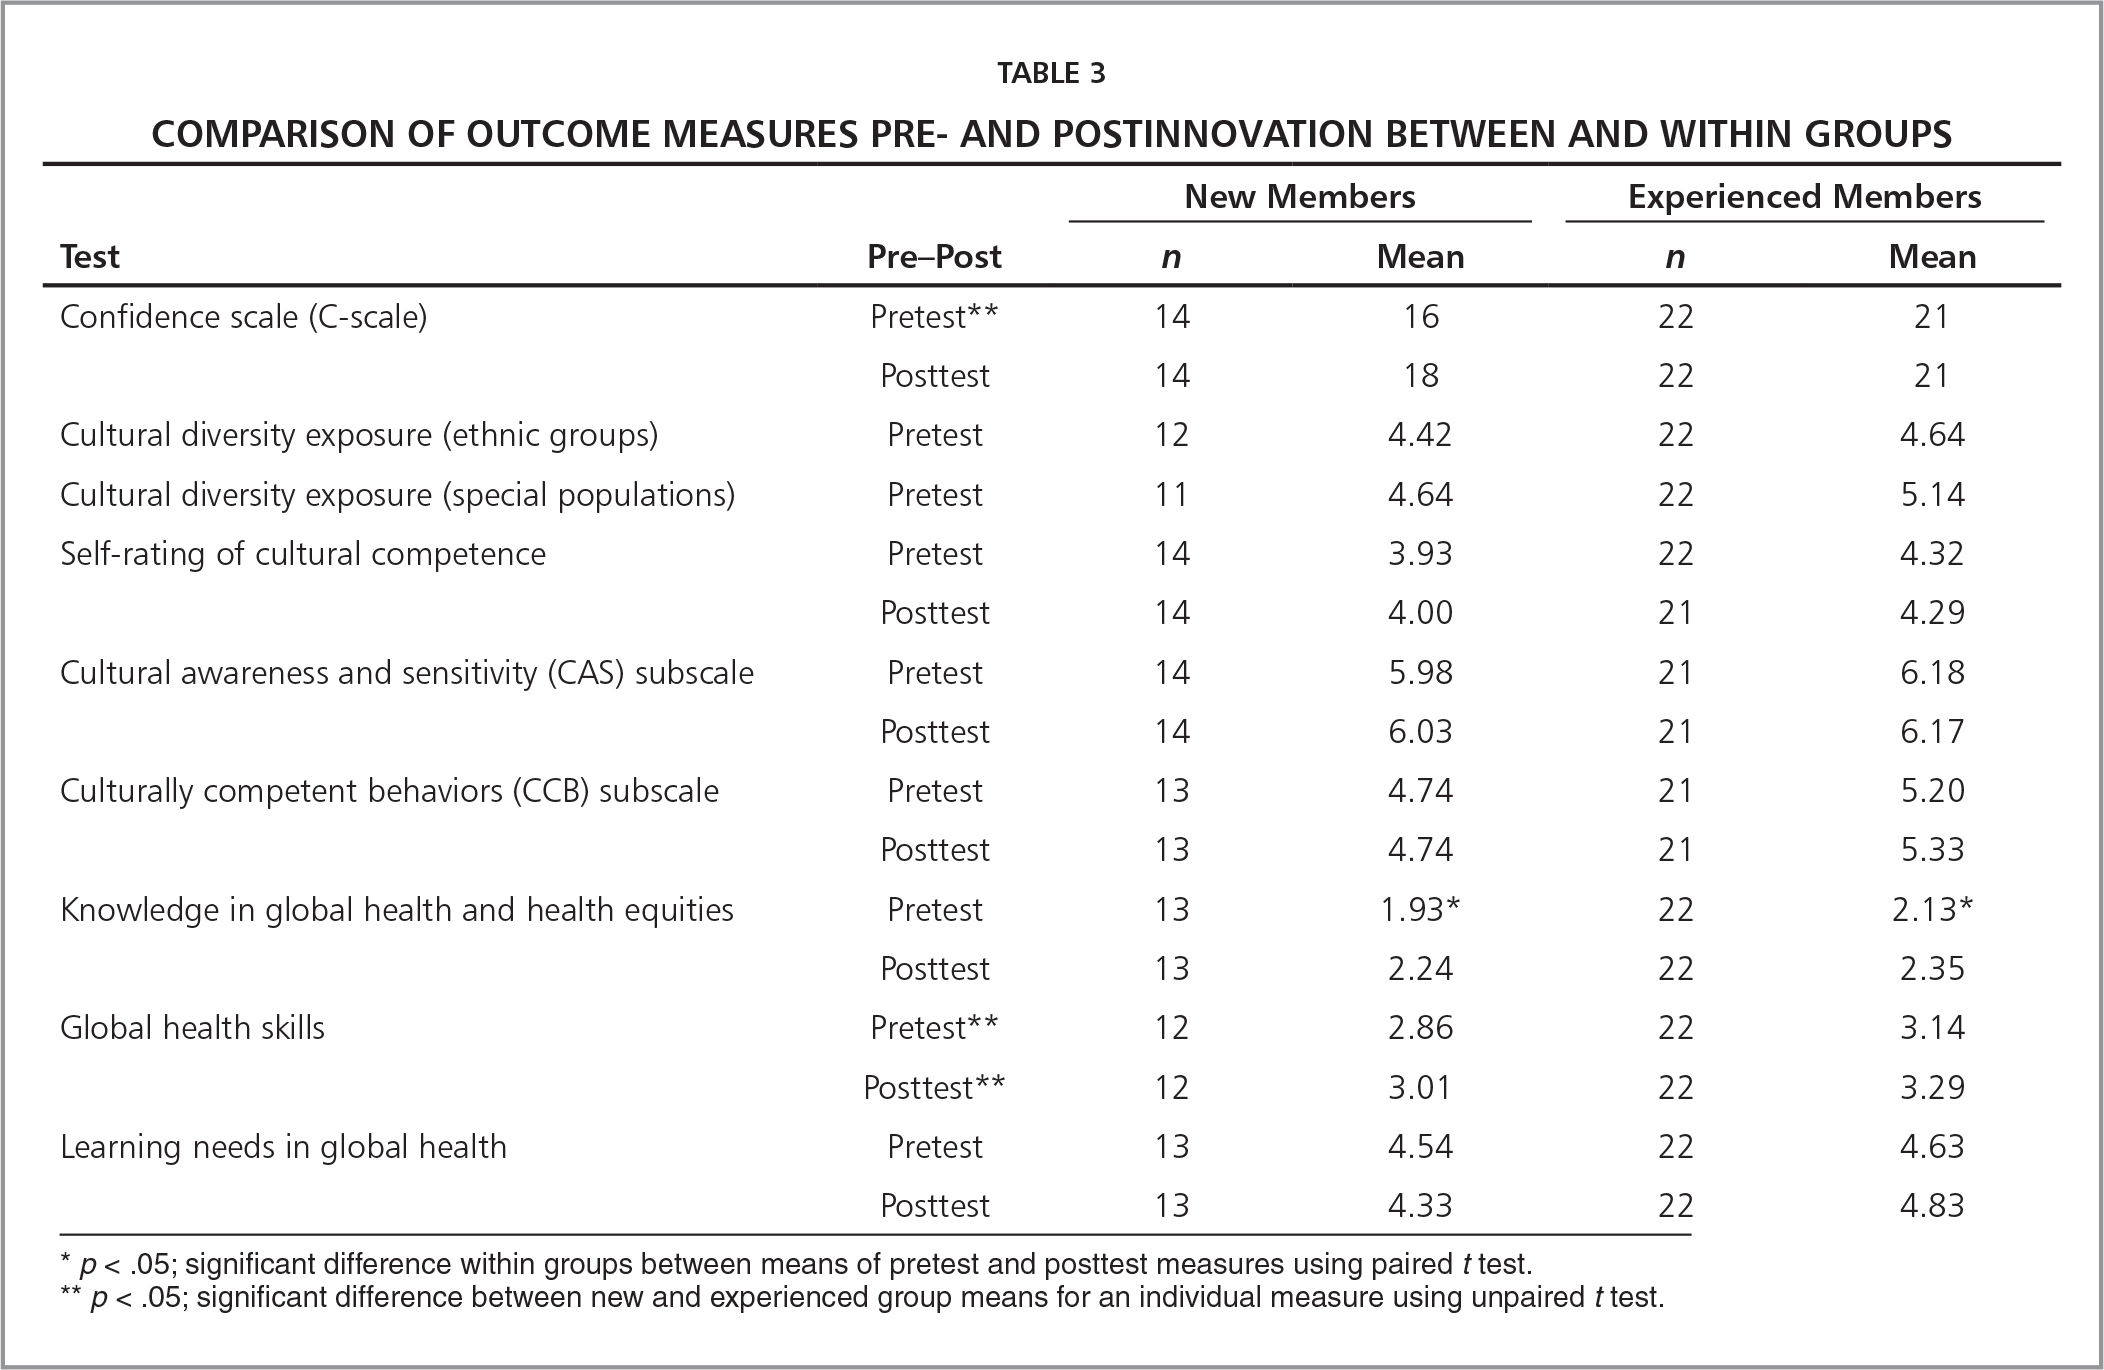 Comparison of Outcome Measures Pre- and Postinnovation Between and Within Groups